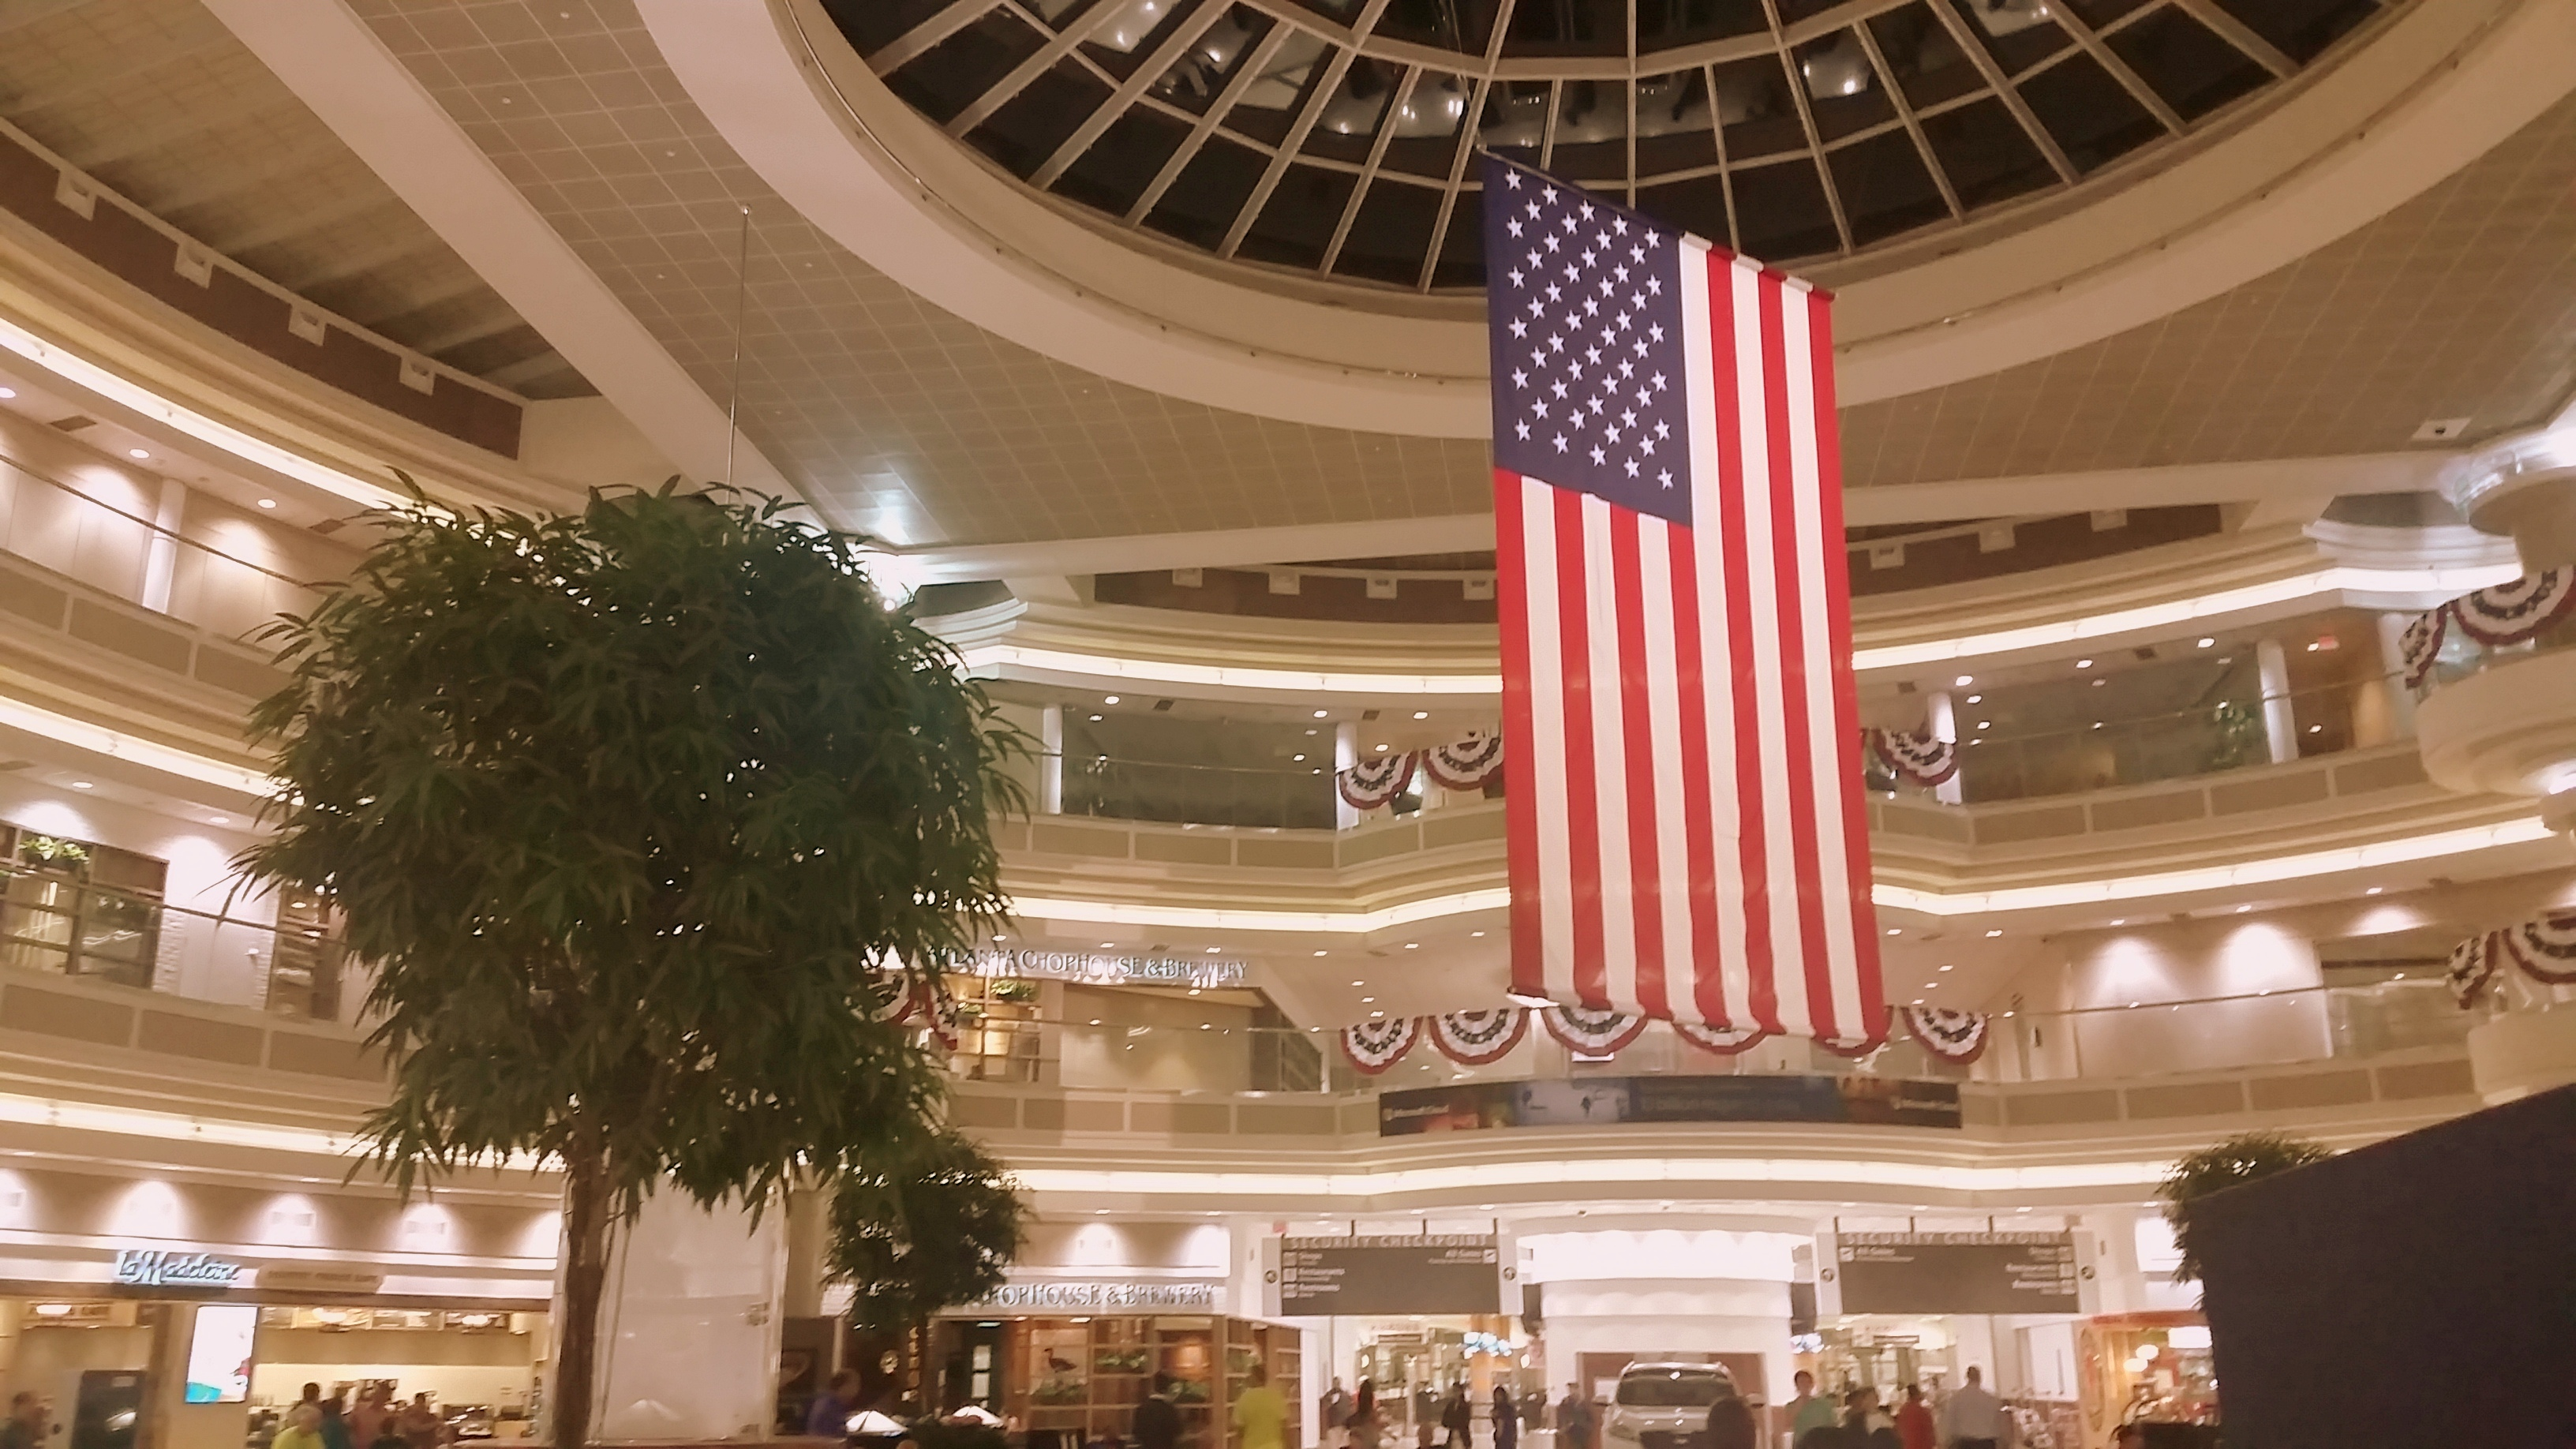 The atrium at Hartsfield-Jackson International Airport in Atlanta was all decked out this week in preparation for  Independence Day